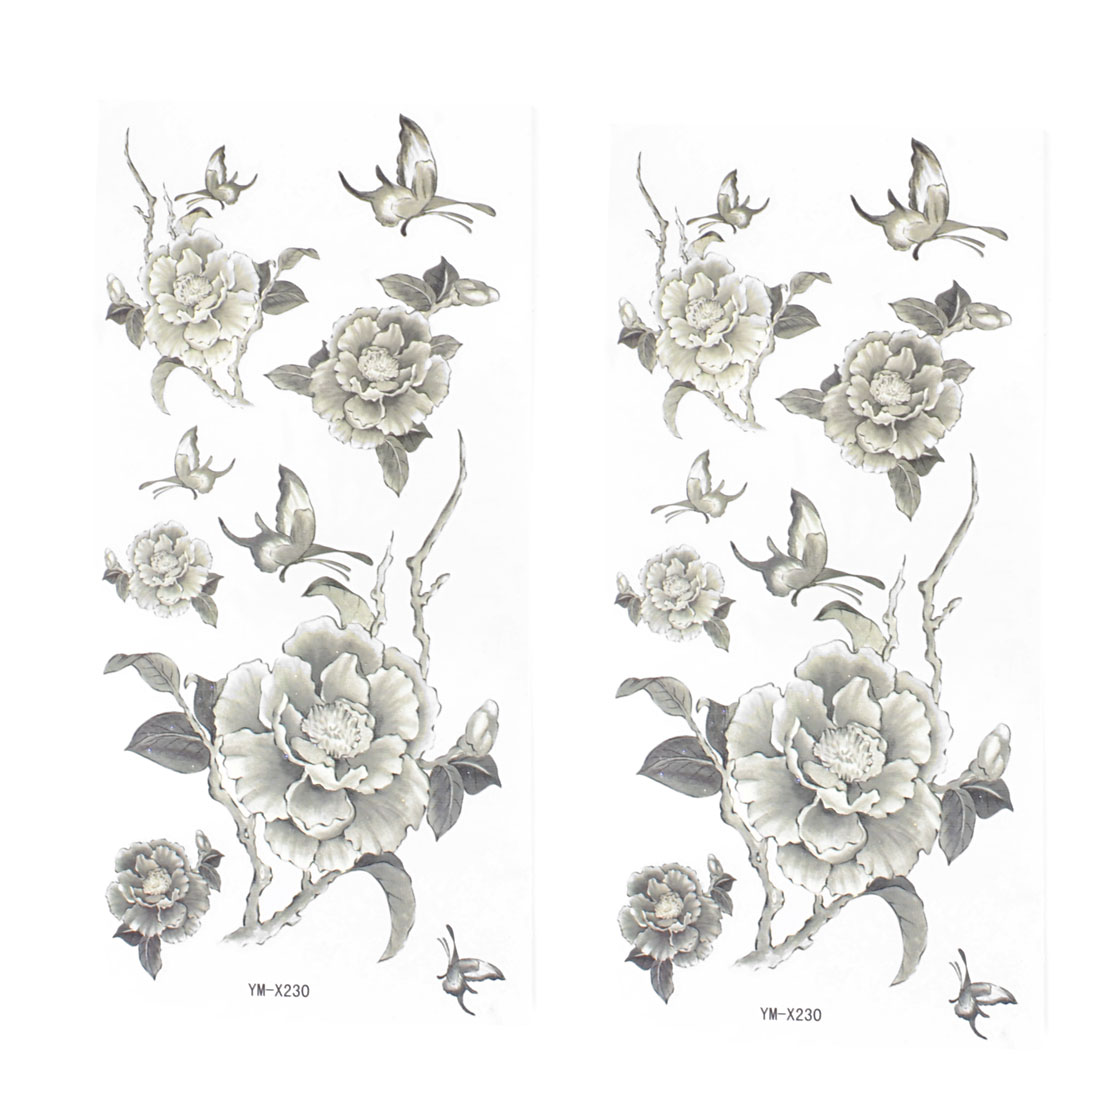 Skin Embellish Black Peony Flower Pattern Temporary Tattoo Transfer Sticker 2 Pcs